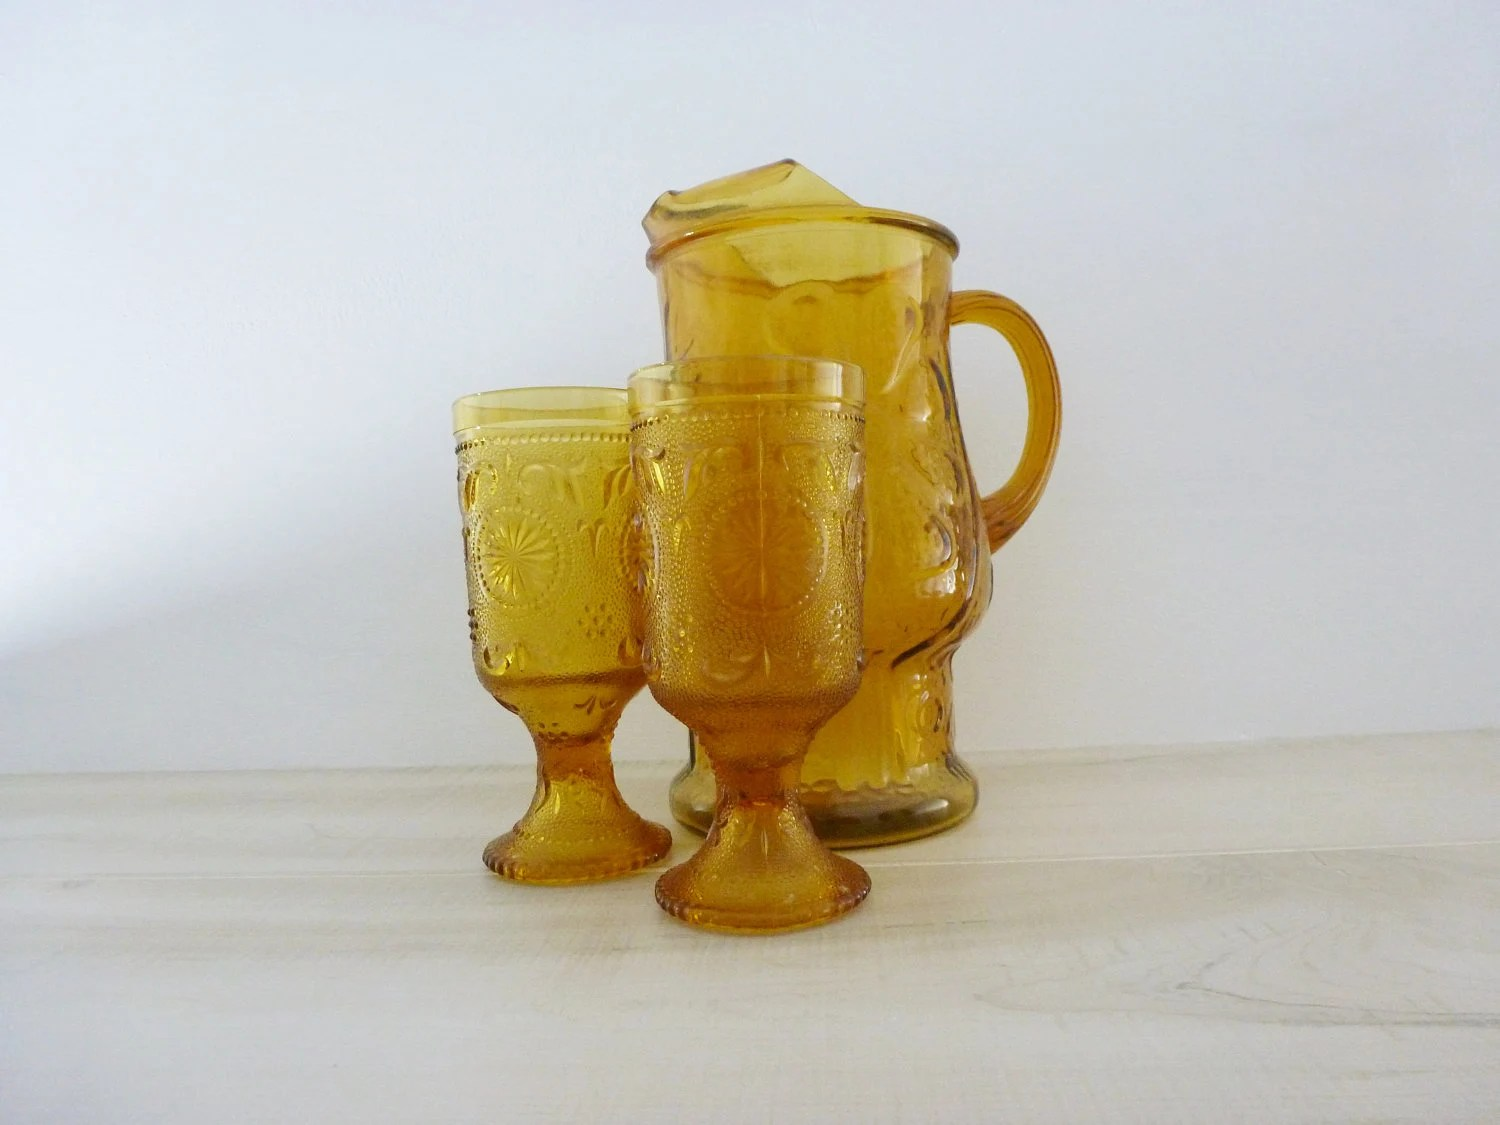 1960s amber yellow glass - vintage kitchen - vintage pitcher and glasses - 24KaratOld